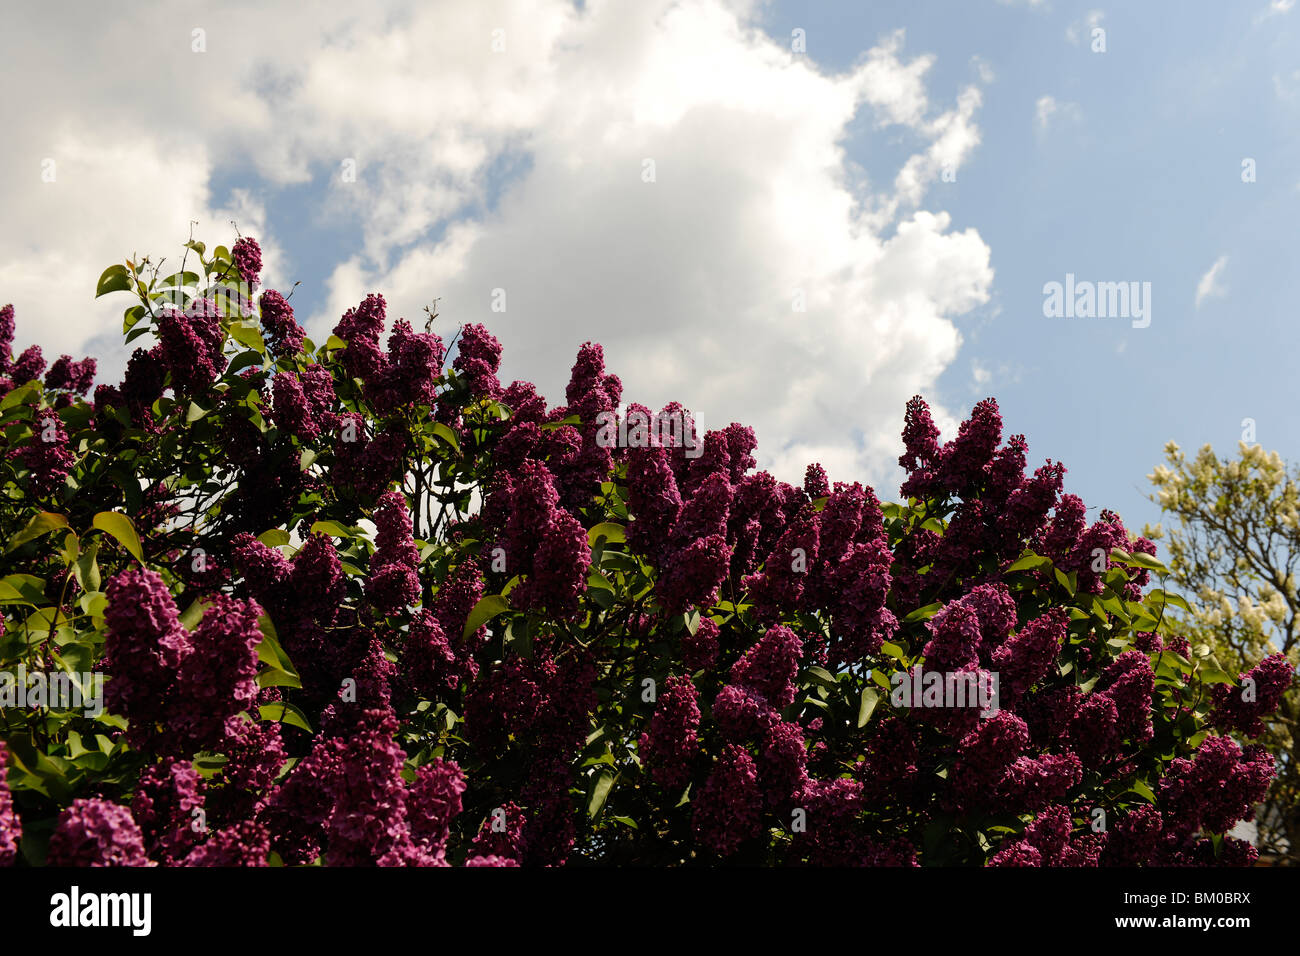 Lilac tree against blue sky - Stock Image